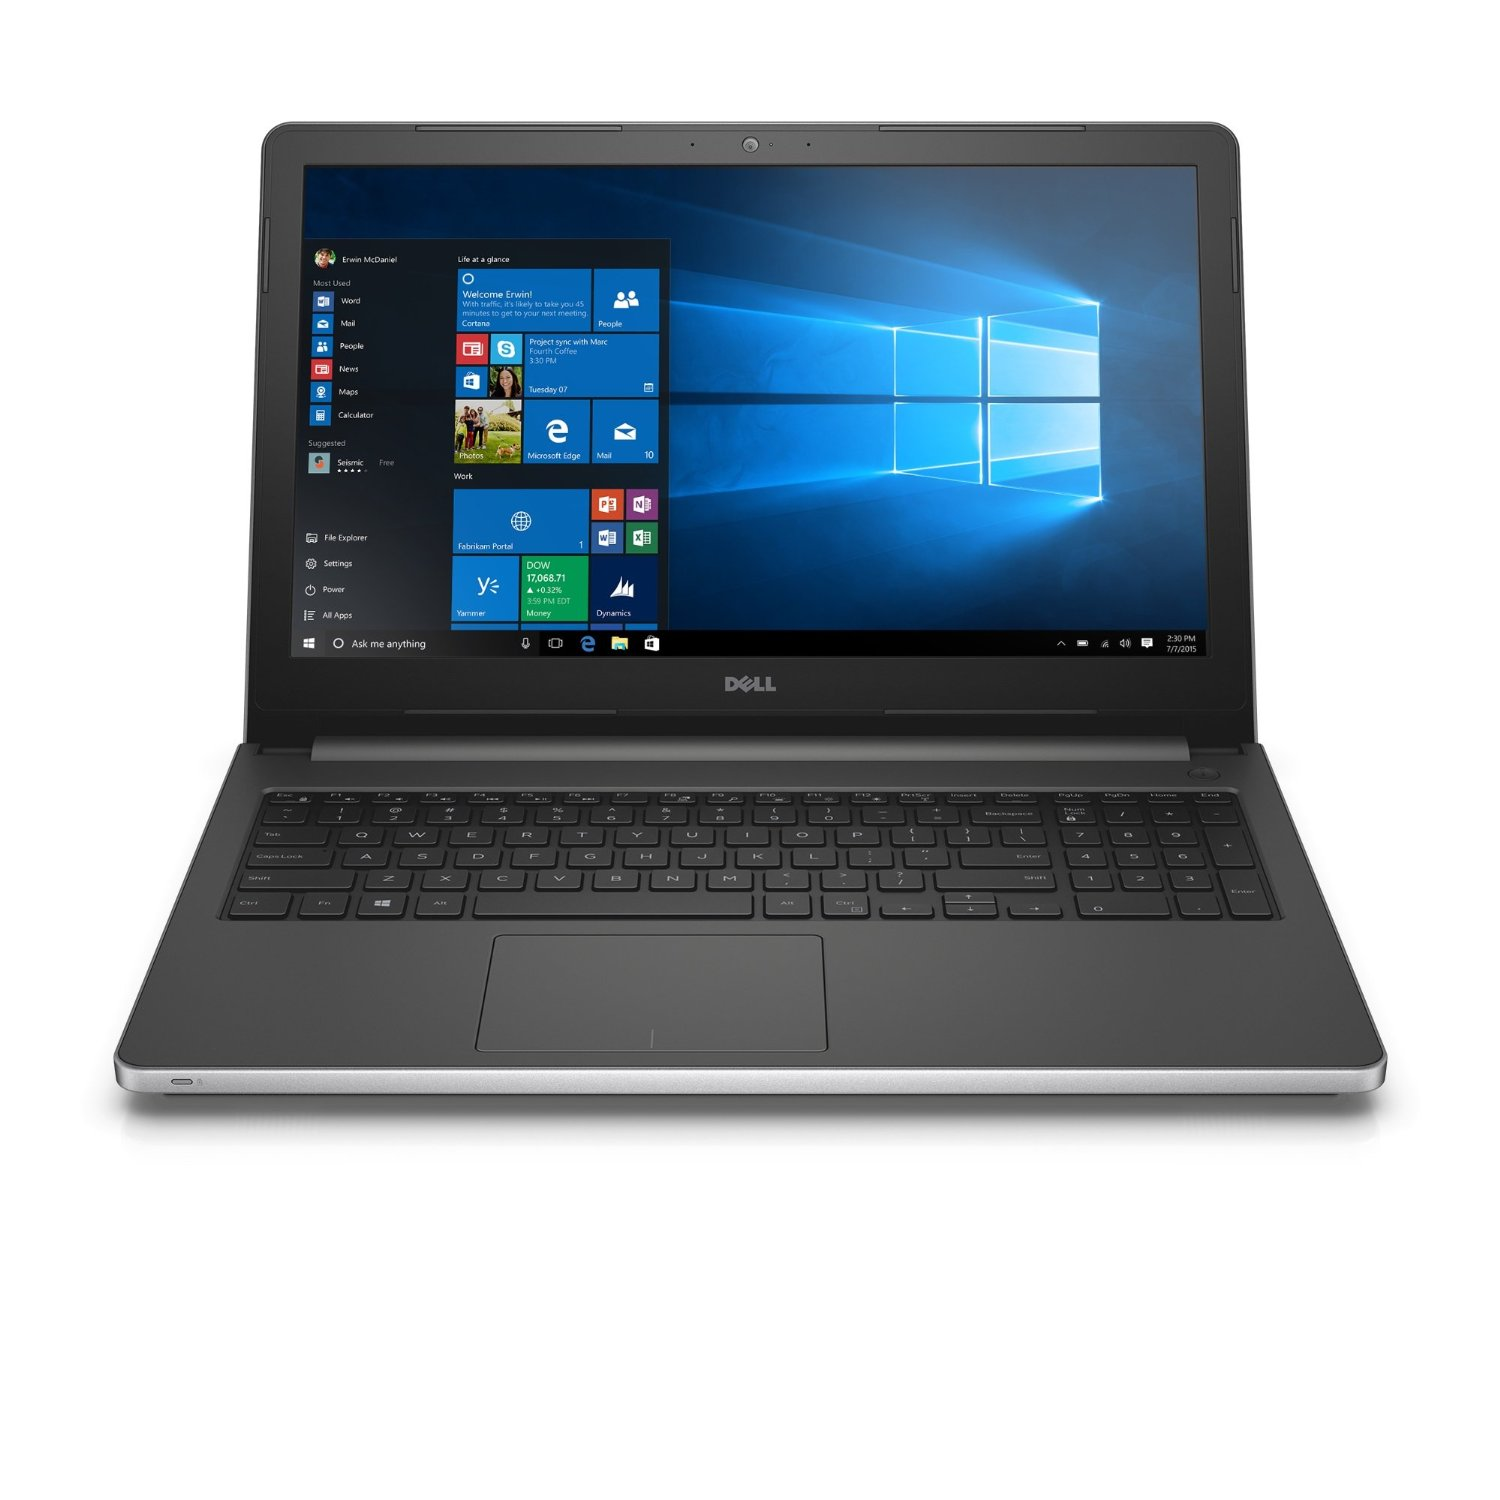 Laptop DELL Ins N7570 N5I5108 - Silver